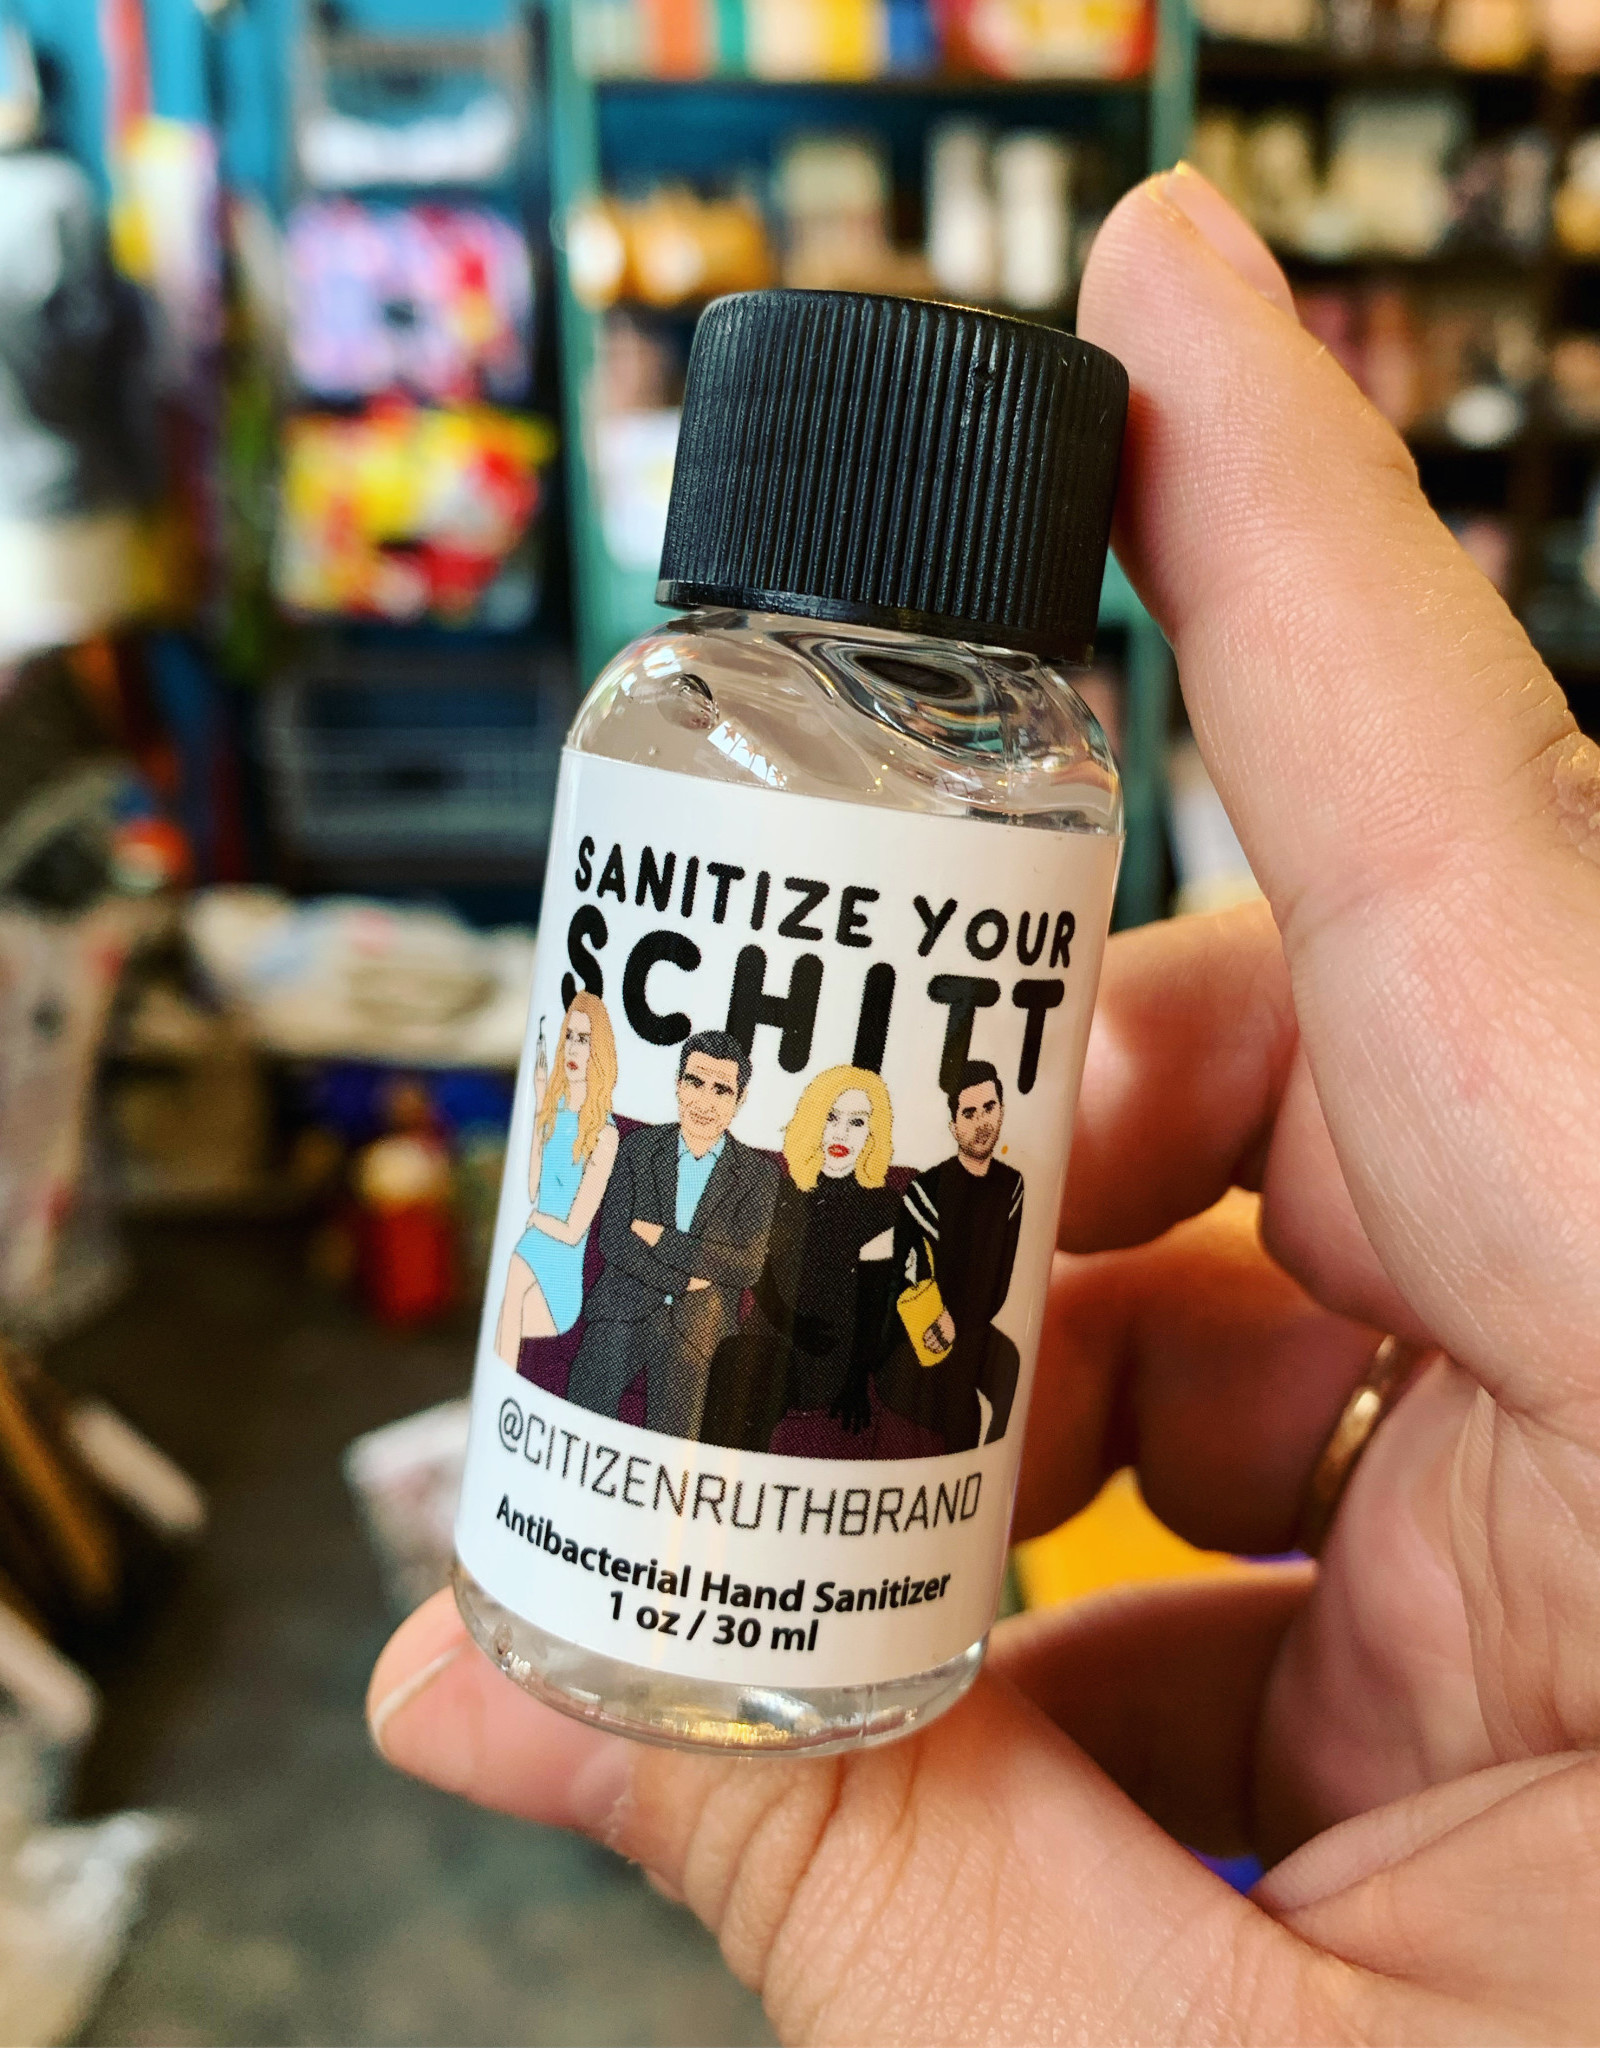 Citizen Ruth Sanitize Your Schitt Hand Sanitizer 1oz